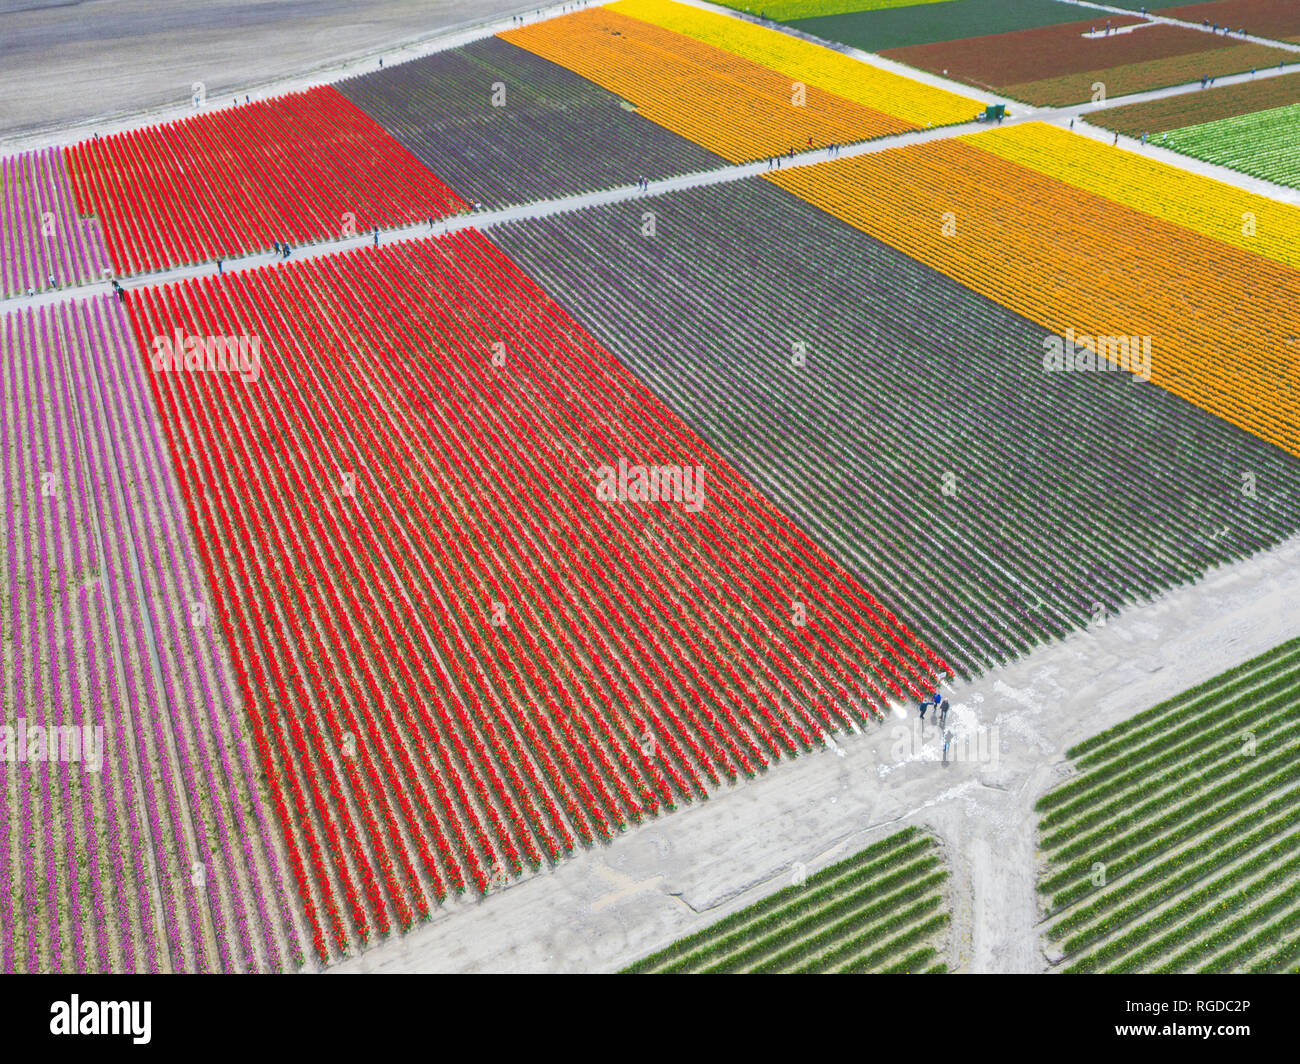 USA, Washington State, Skagit Valley, Aerial view of tulip fields - Stock Image